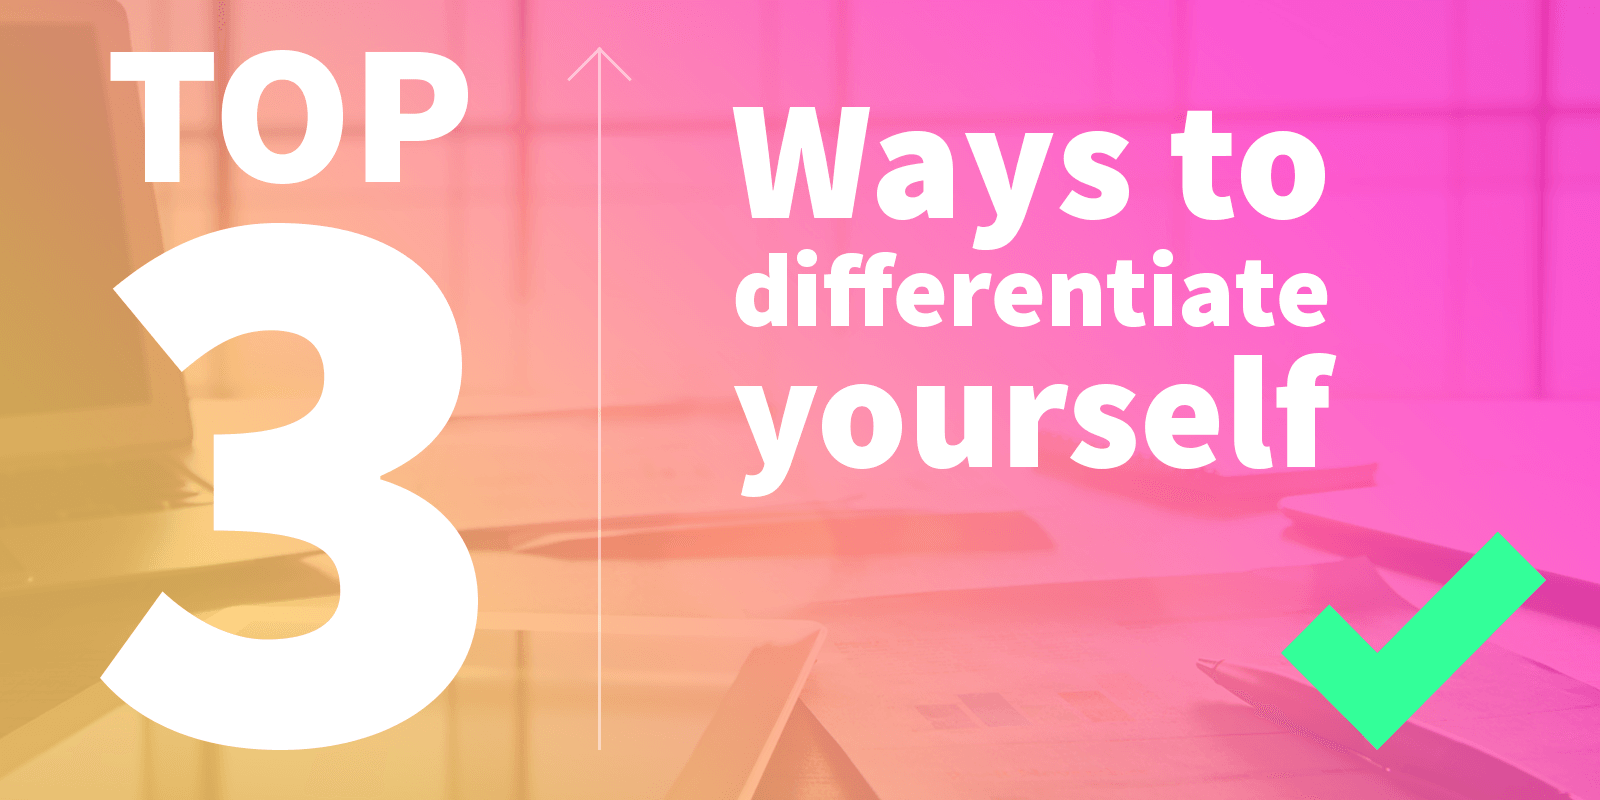 Top 3 ways to differentiate yourself online in a crowded market